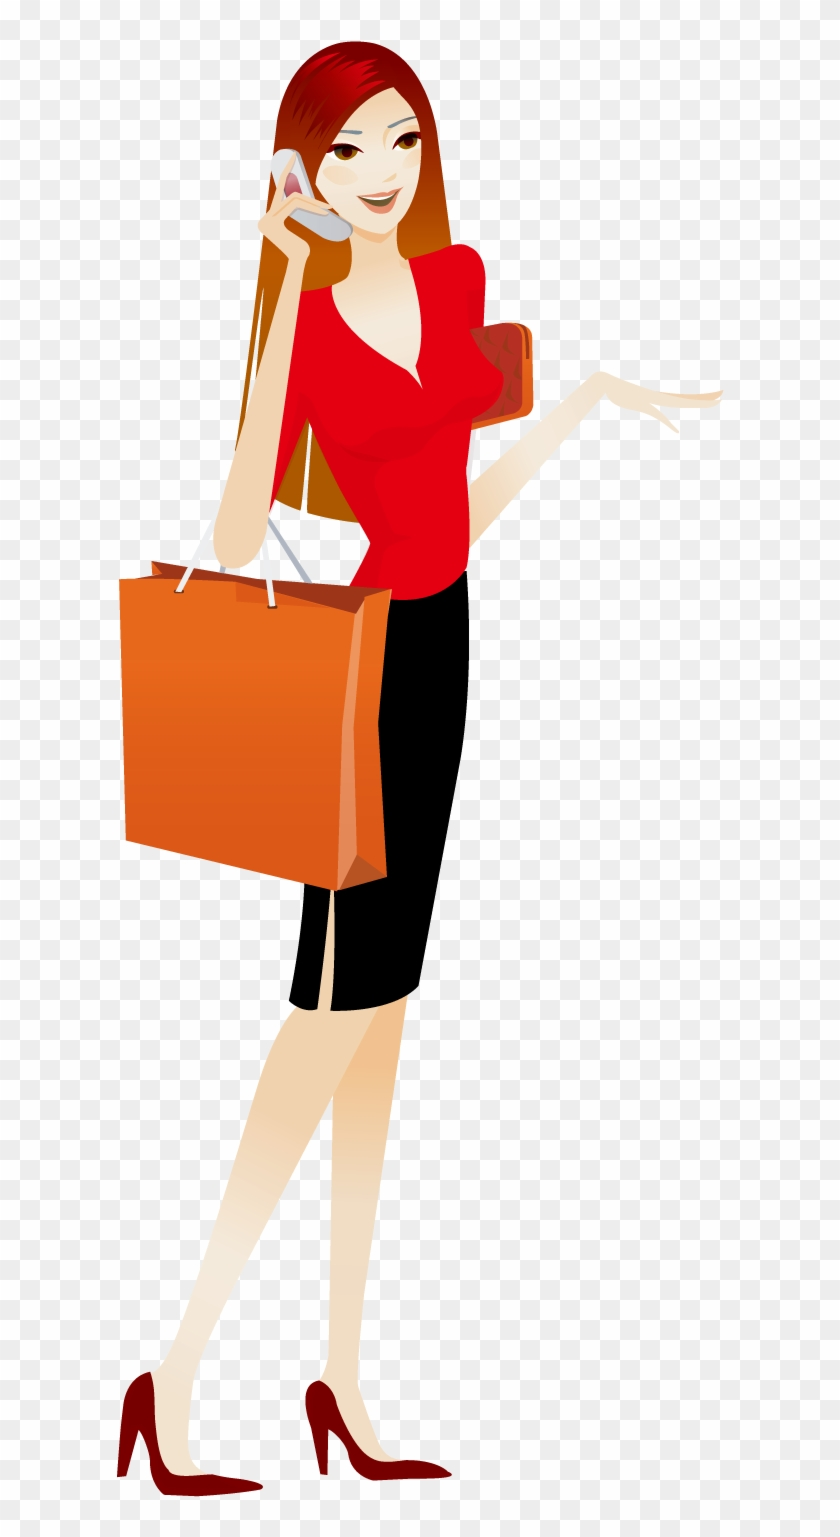 Fashion Adobe Illustrator Clip Art - Fashion #40576